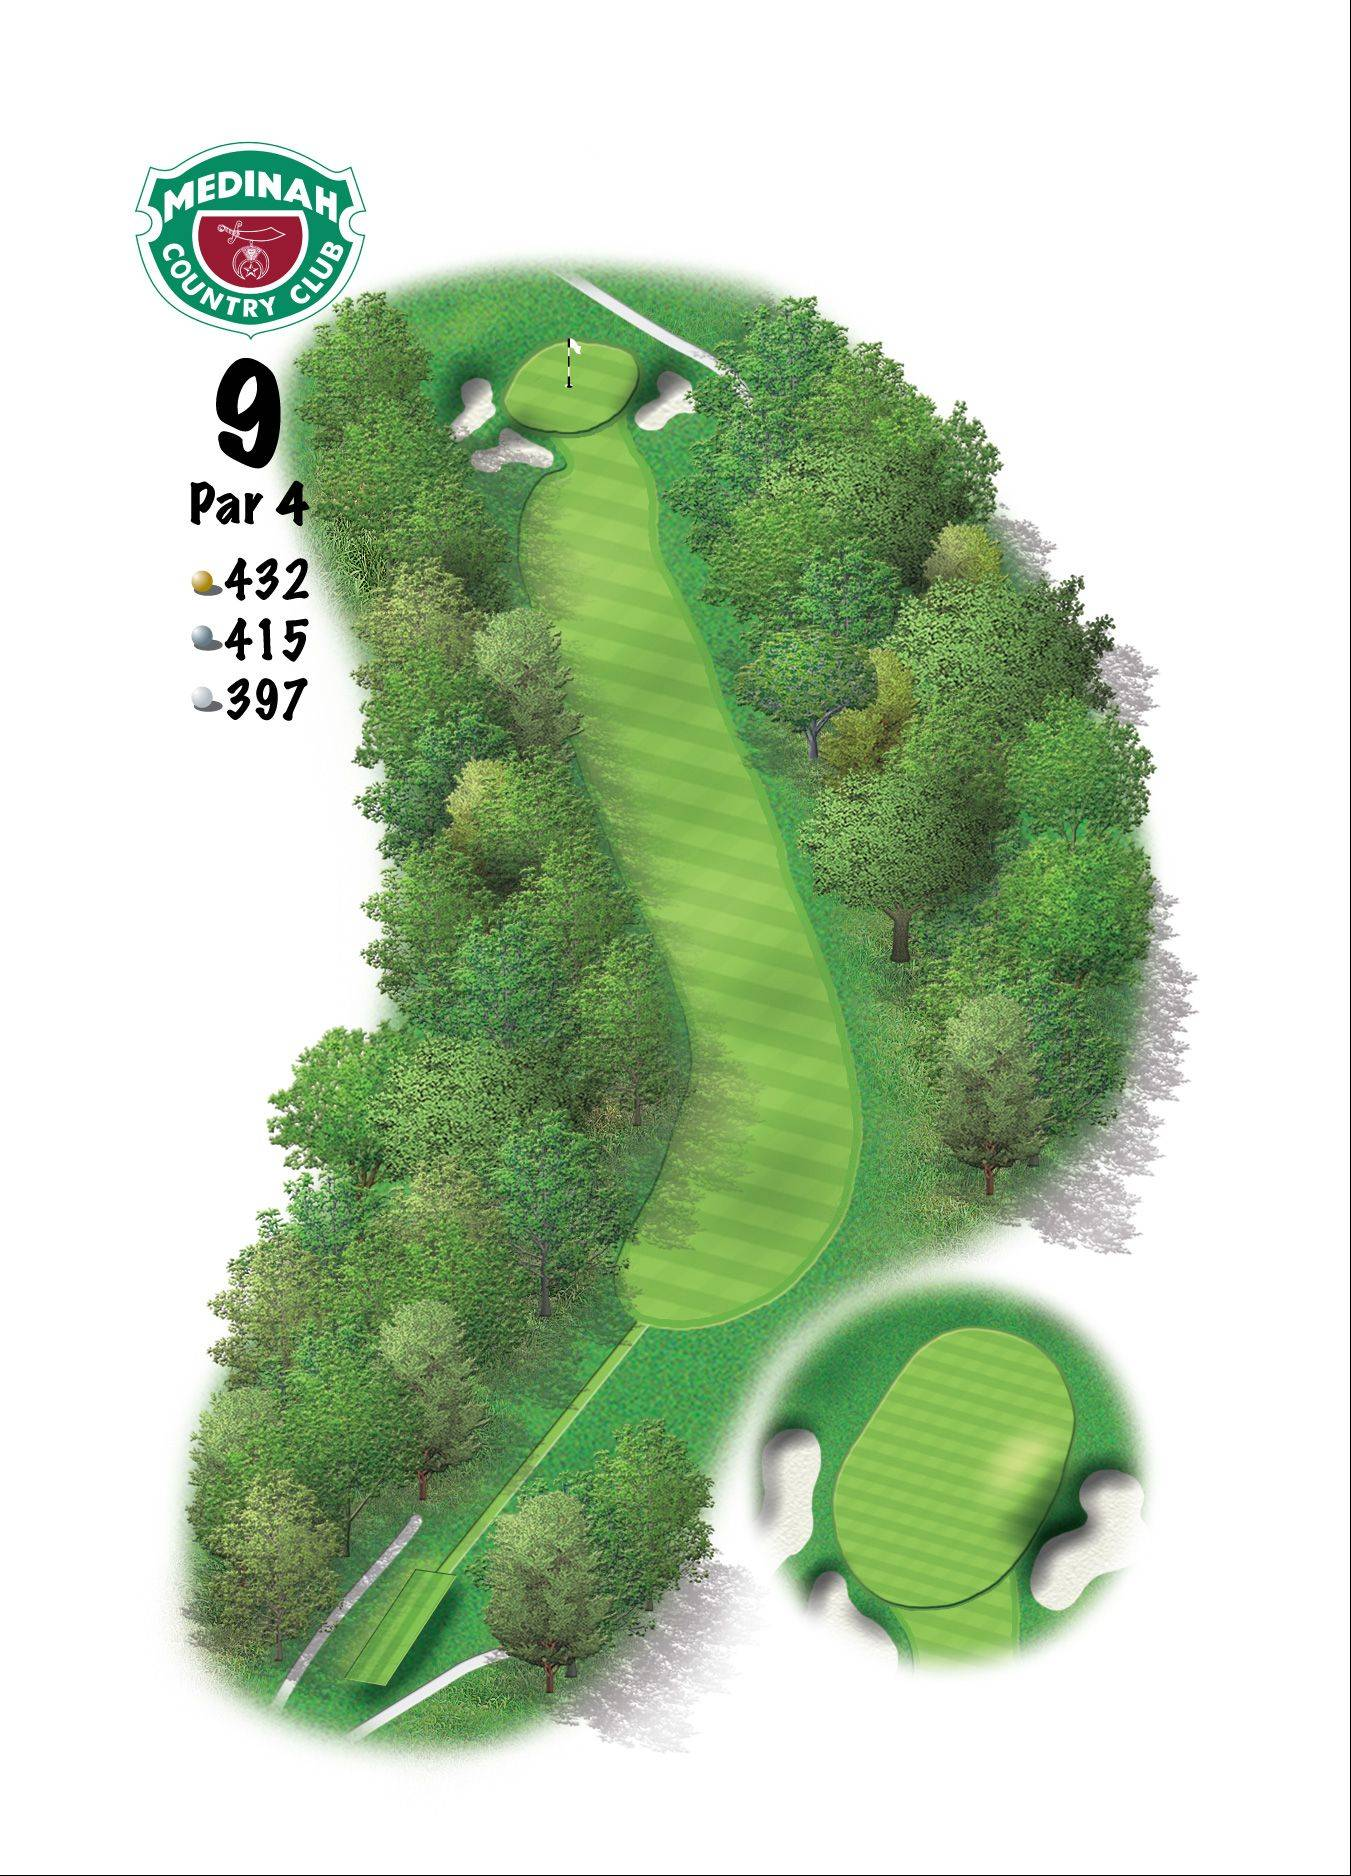 Hole 9 of the Ryder Cup course at Medinah. 432 yards/395 meters, Par-4, This hole offers a great dogleg left that presents somewhat of a blind shot off the tee, and in today's game it will require a 3-wood, or hybrid. Hugging the right side here will leave you an uphill look at a well-bunkered green that breaks fast from right-to-left. Take your par here, and run to the 10th tee.